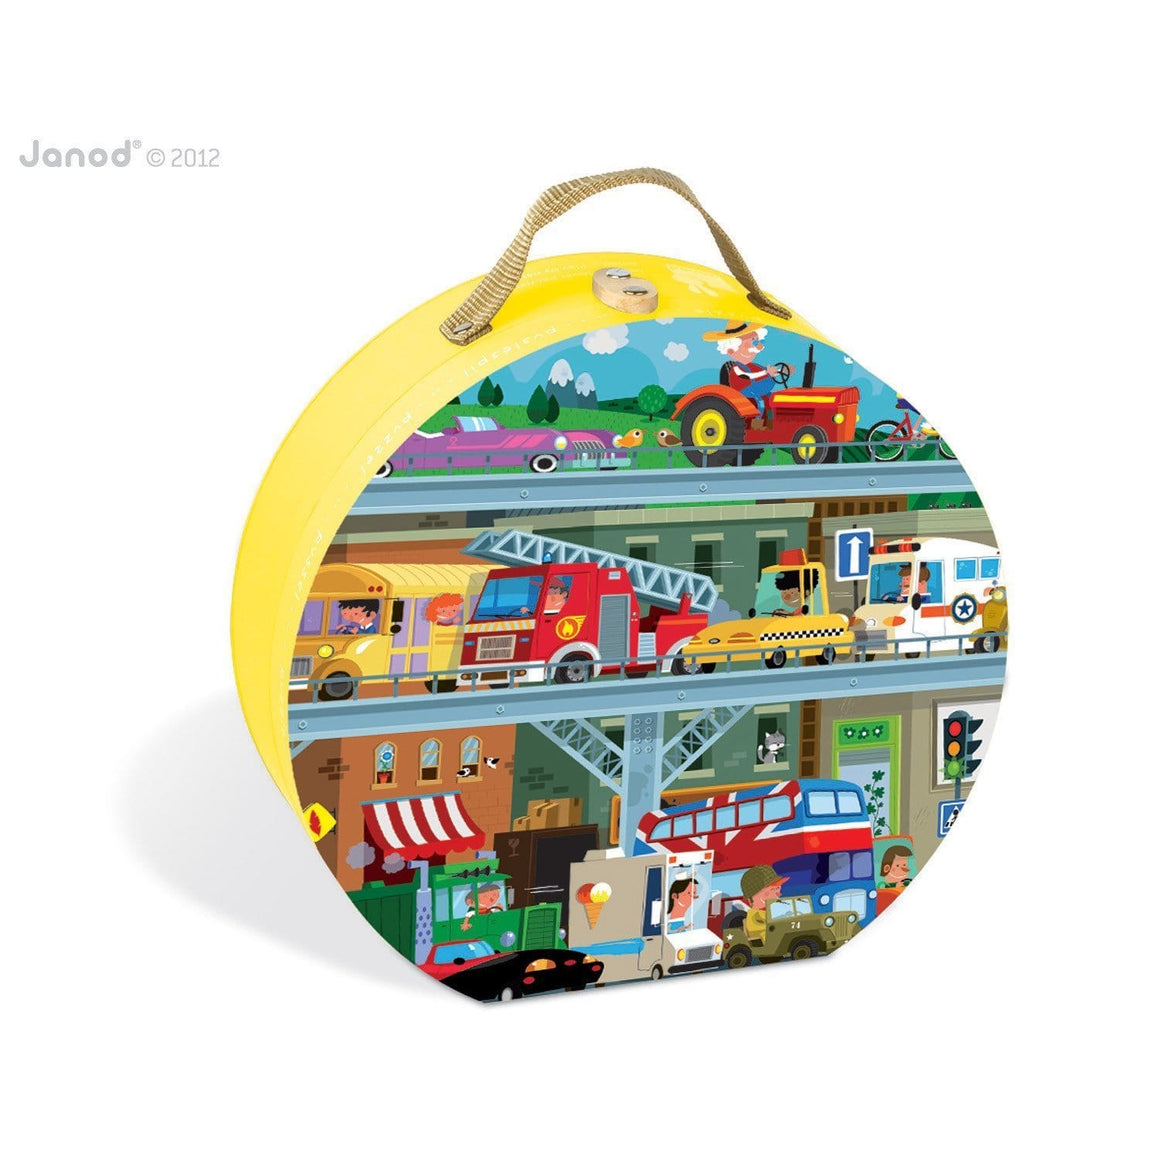 Janod France Hat Boxed 100 Pcs Puzzle (Vehicles) 法國品牌Janod 100片拼圖 (汽車)